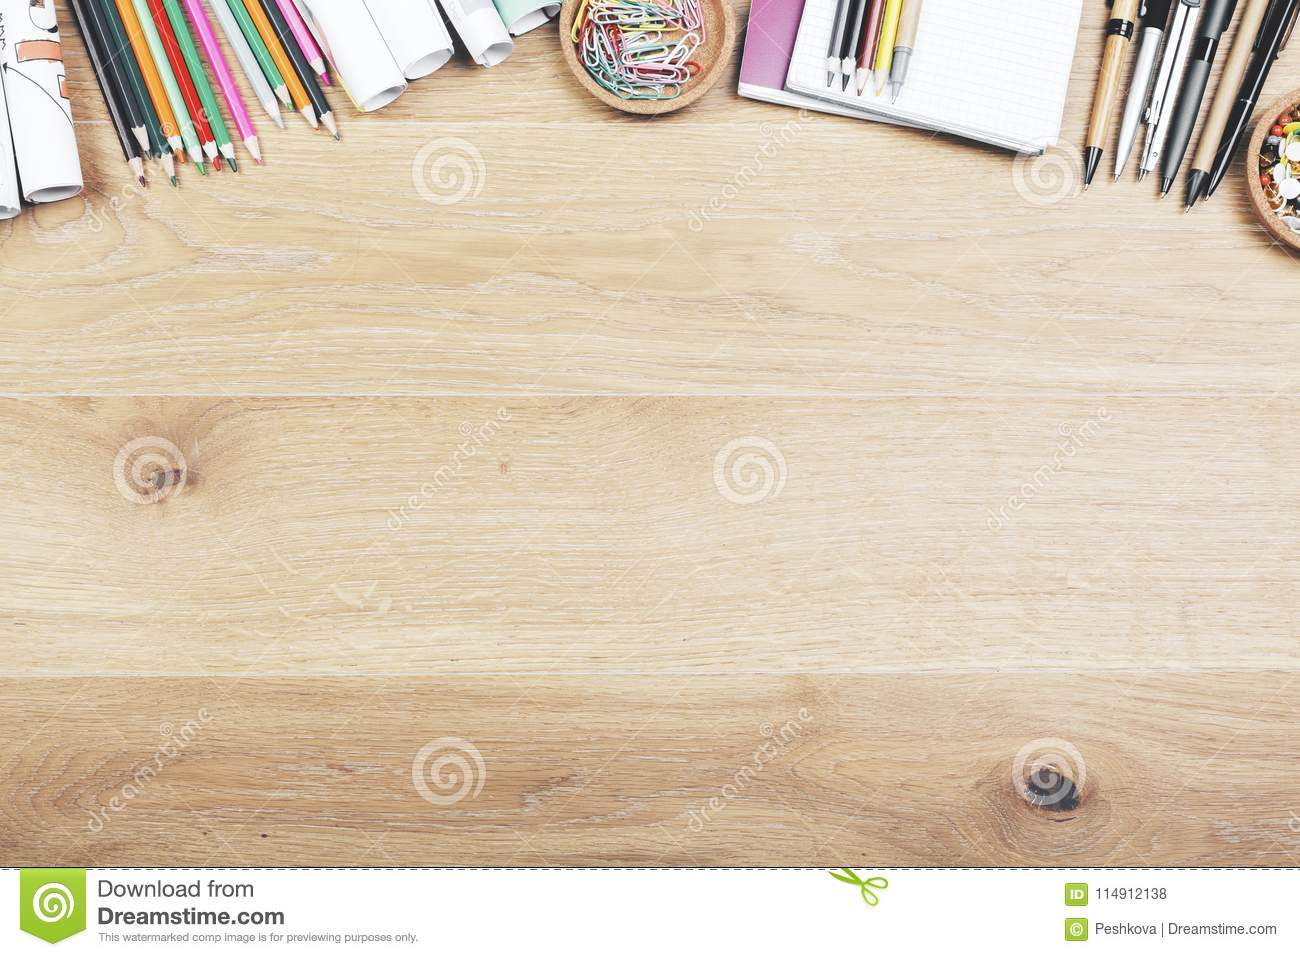 Download Hipster Office Workspace With Supplies Stock Photo   Image Of  Information, Concept: 114912138